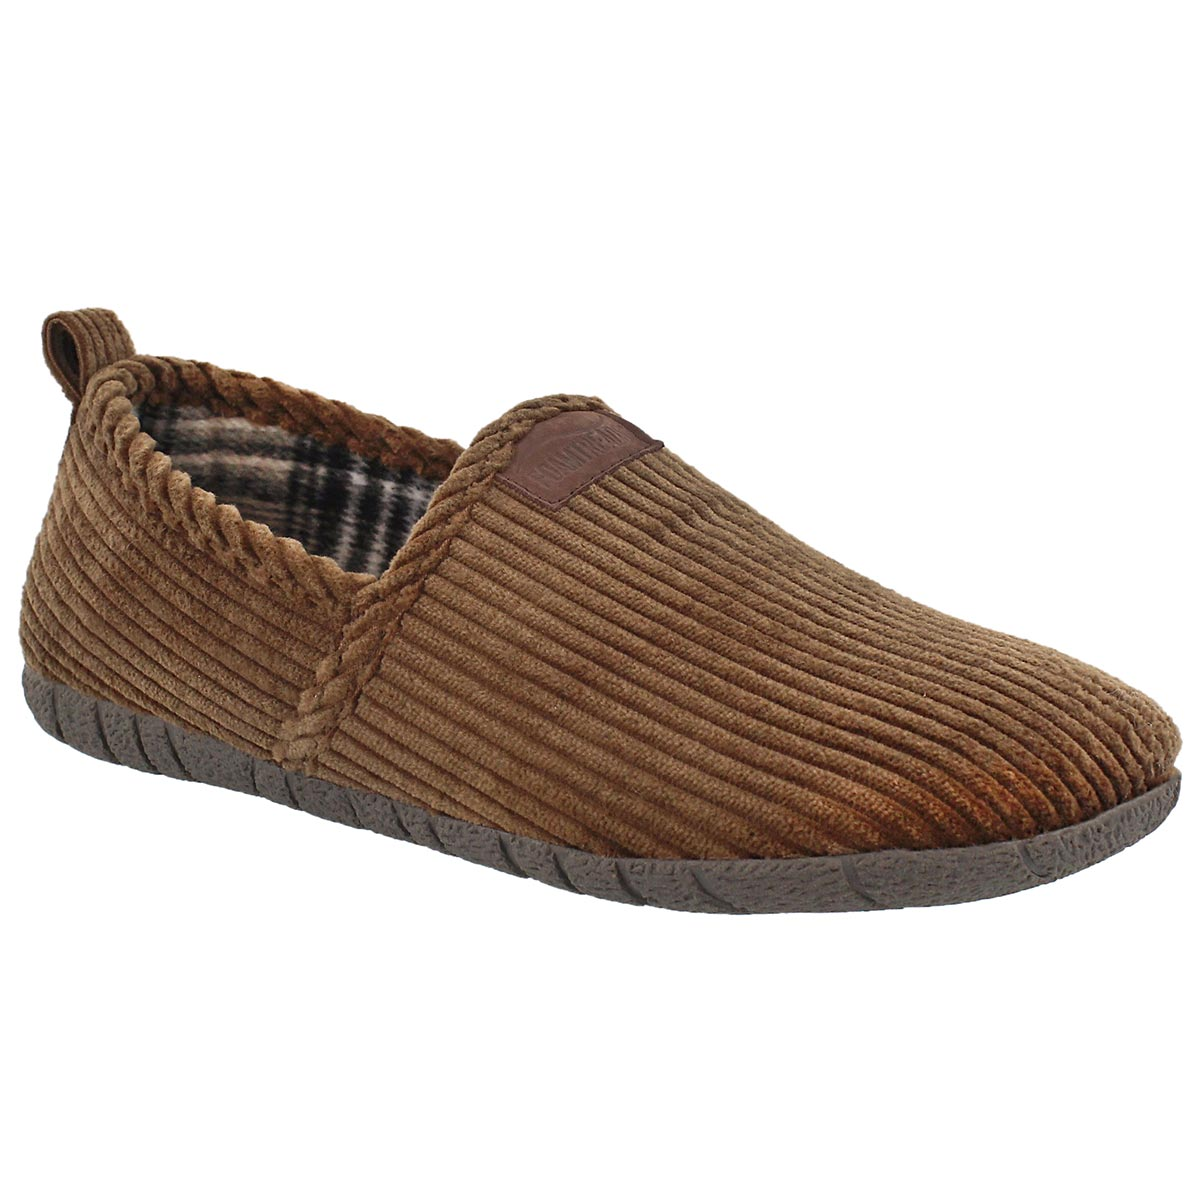 Men's MILTON brown closed back slippers